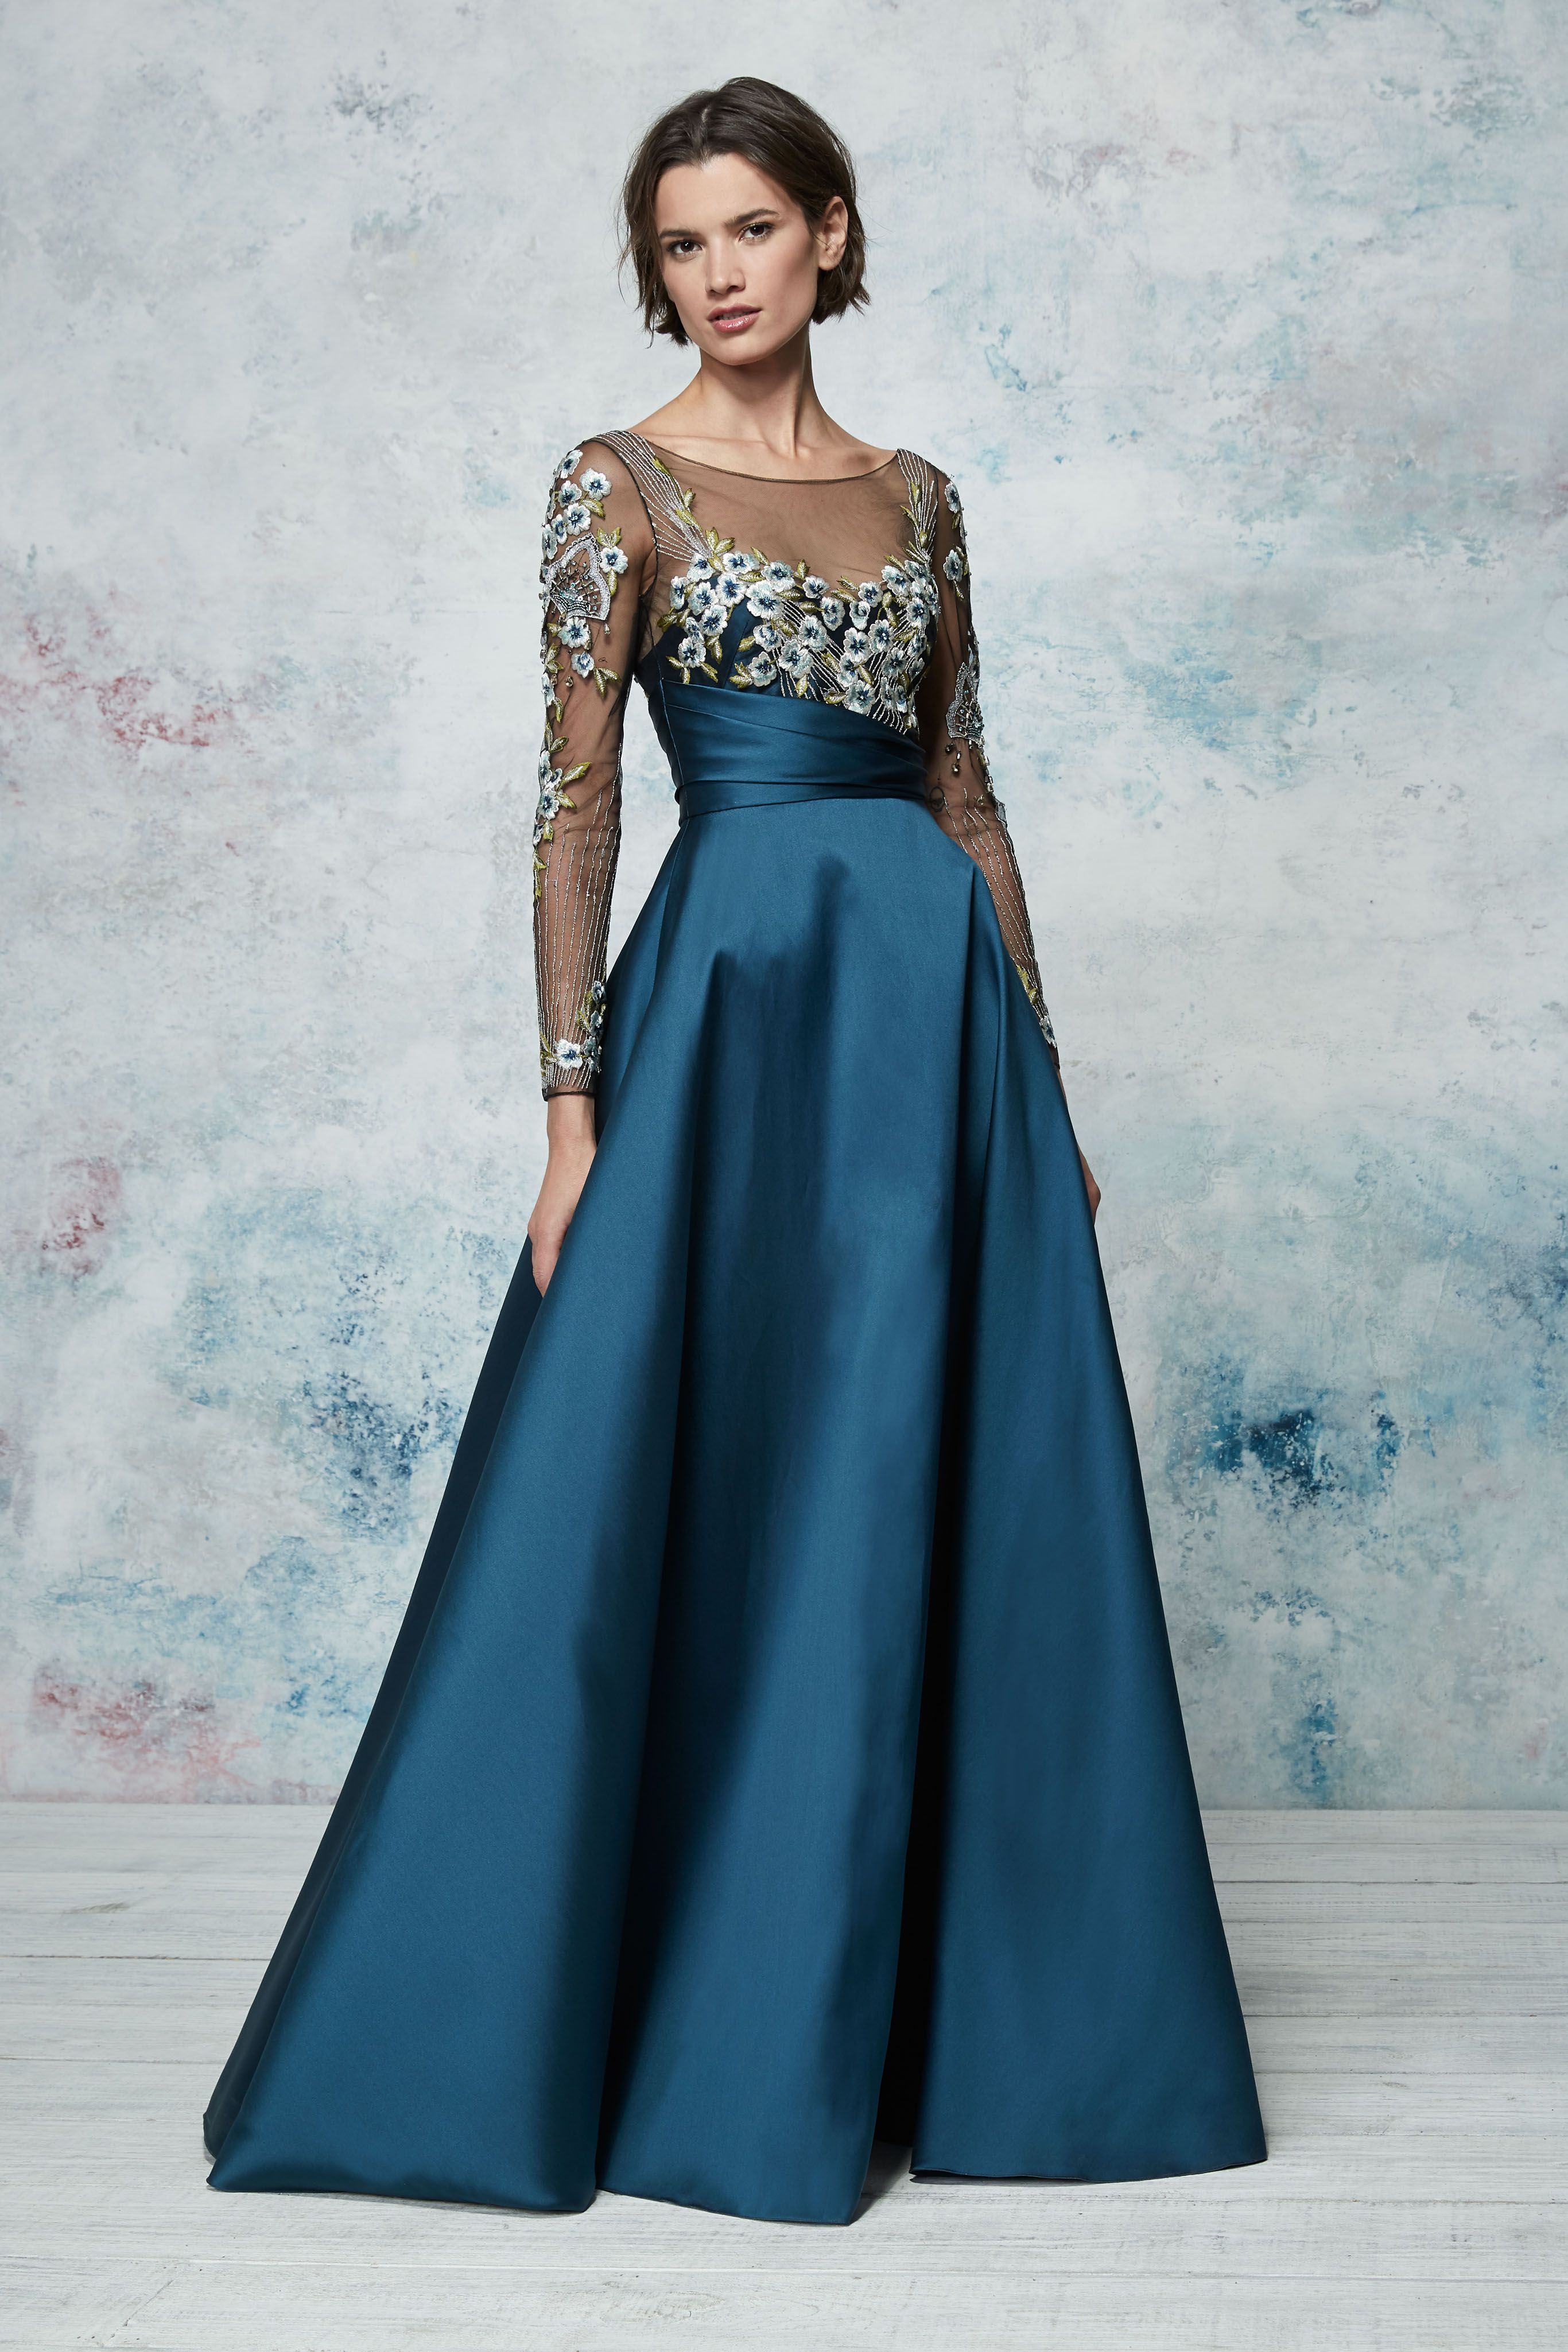 Marchesa notte green lace dress  Marchesa Notte Resort  Look   clothing  Pinterest  Marchesa